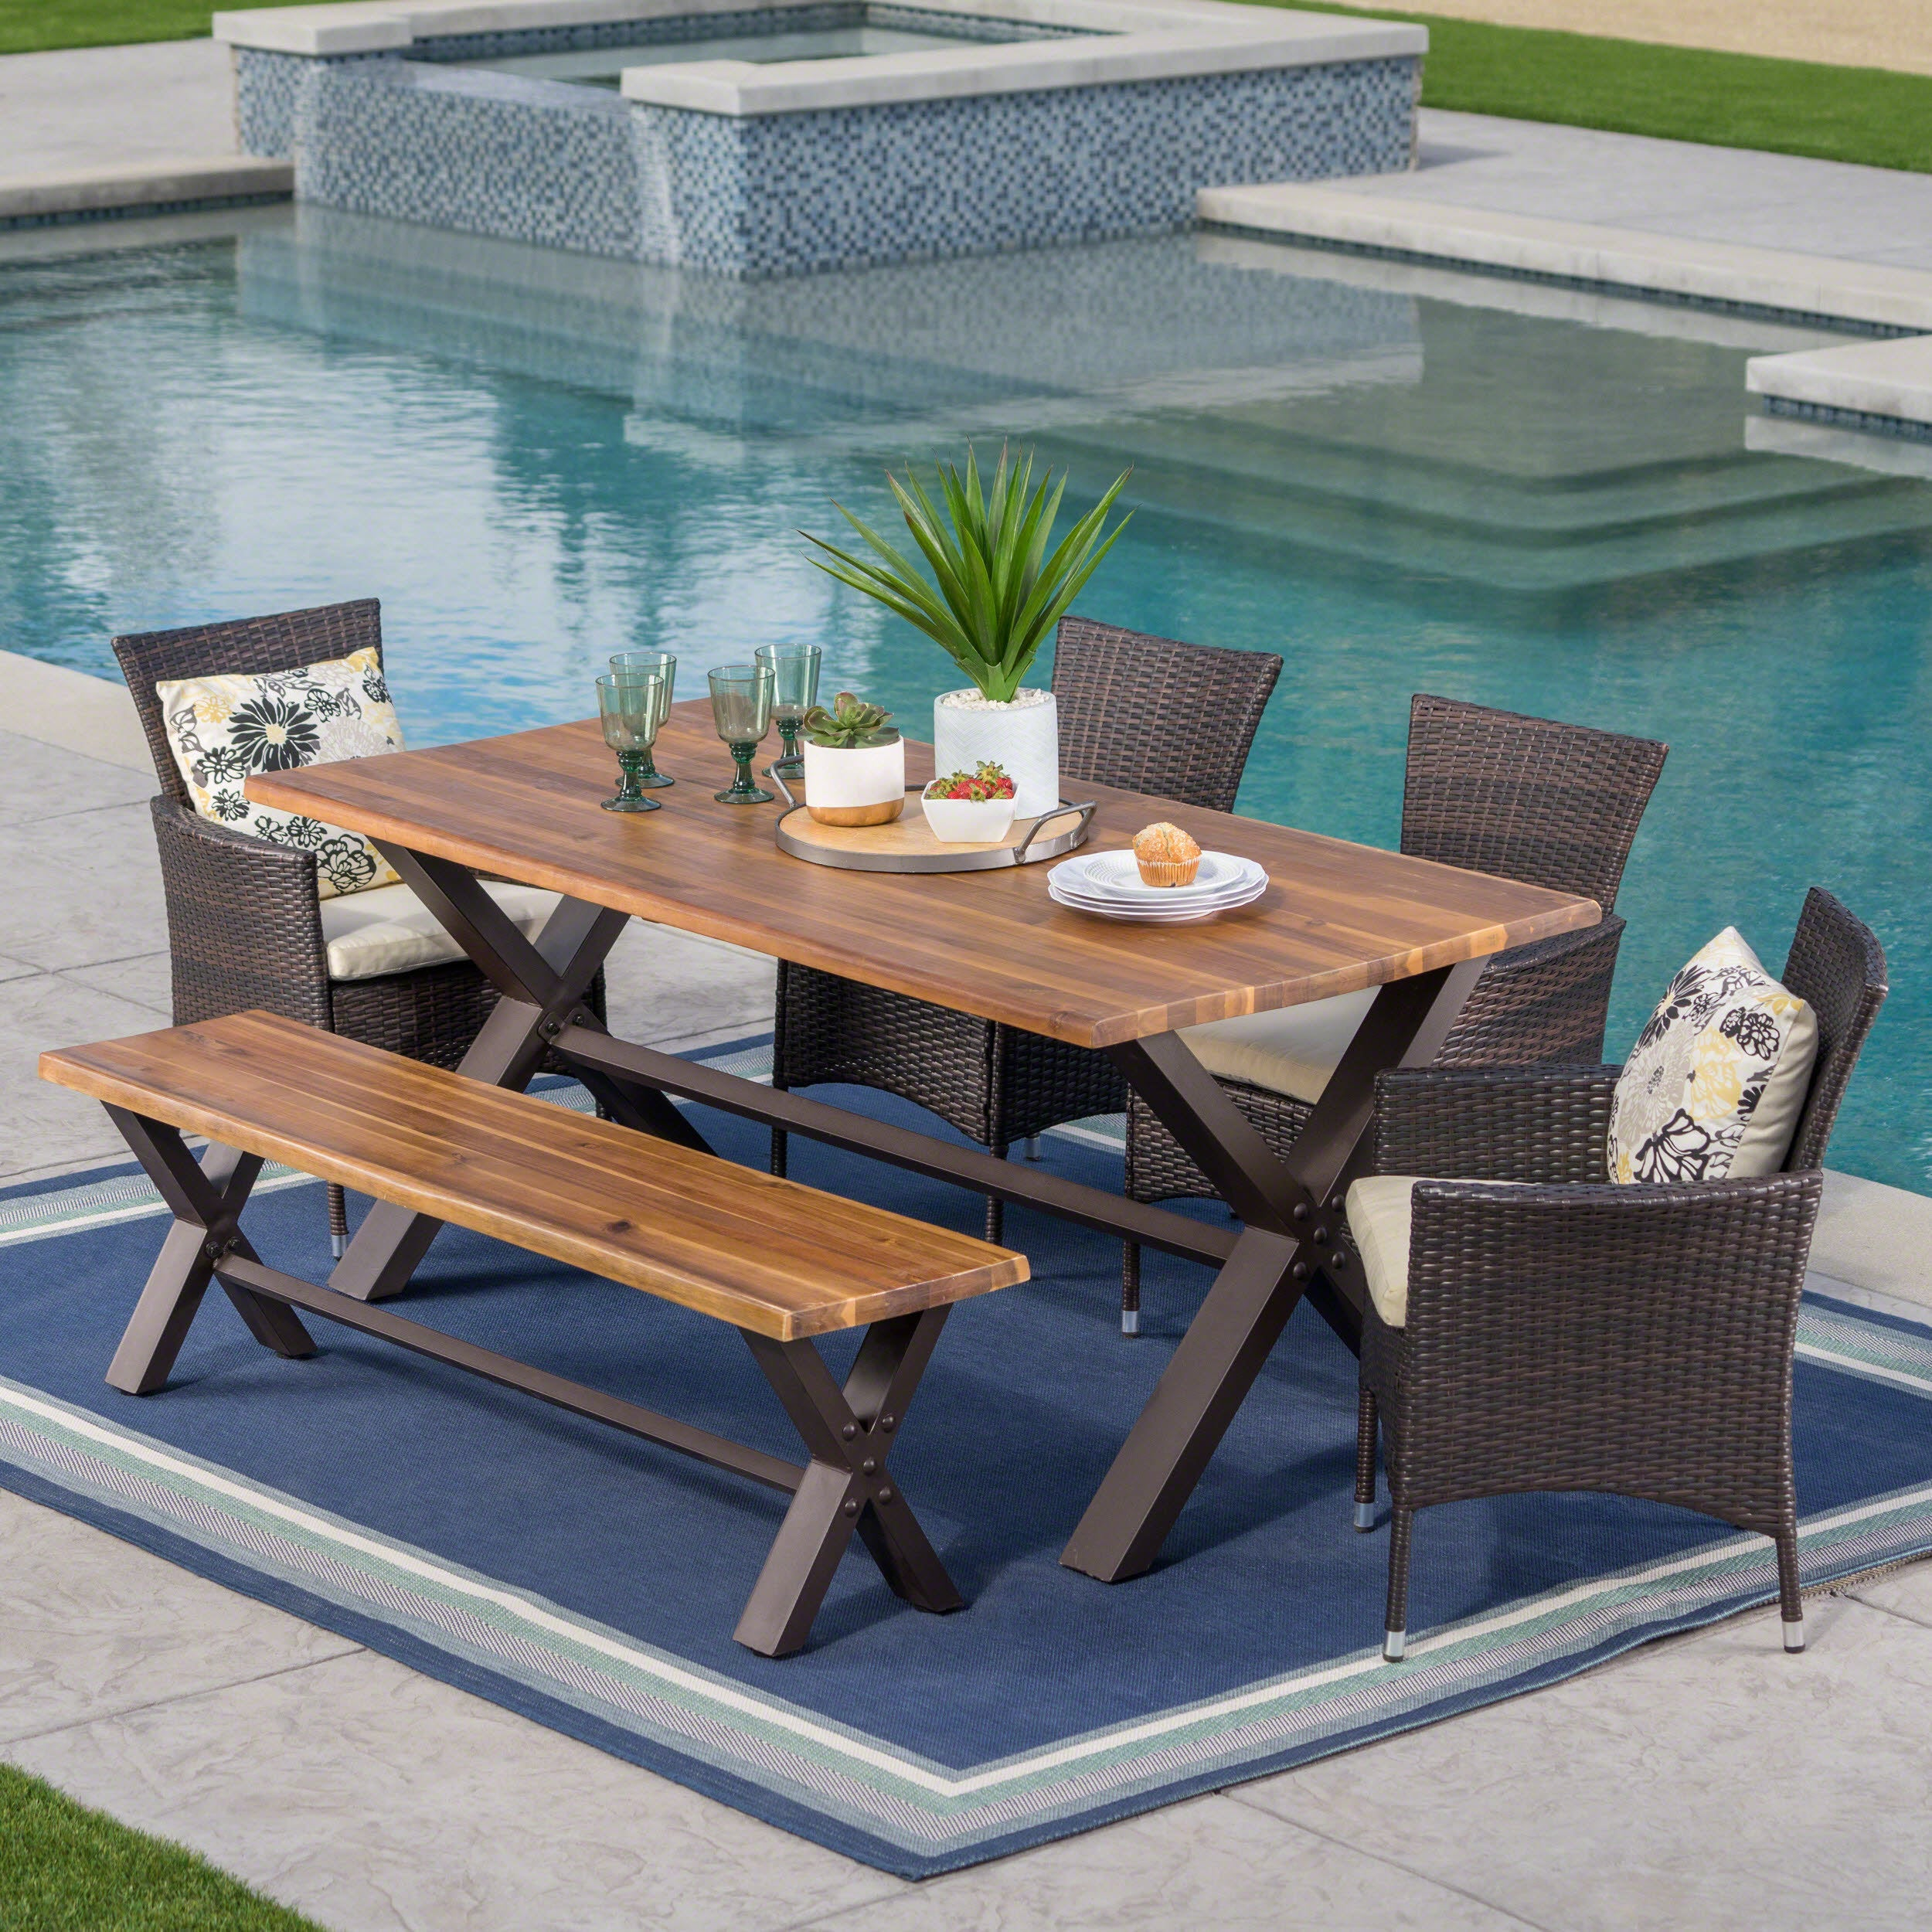 seats up to 6 & Buy Outdoor Dining Sets Online at Overstock.com | Our Best Patio ...